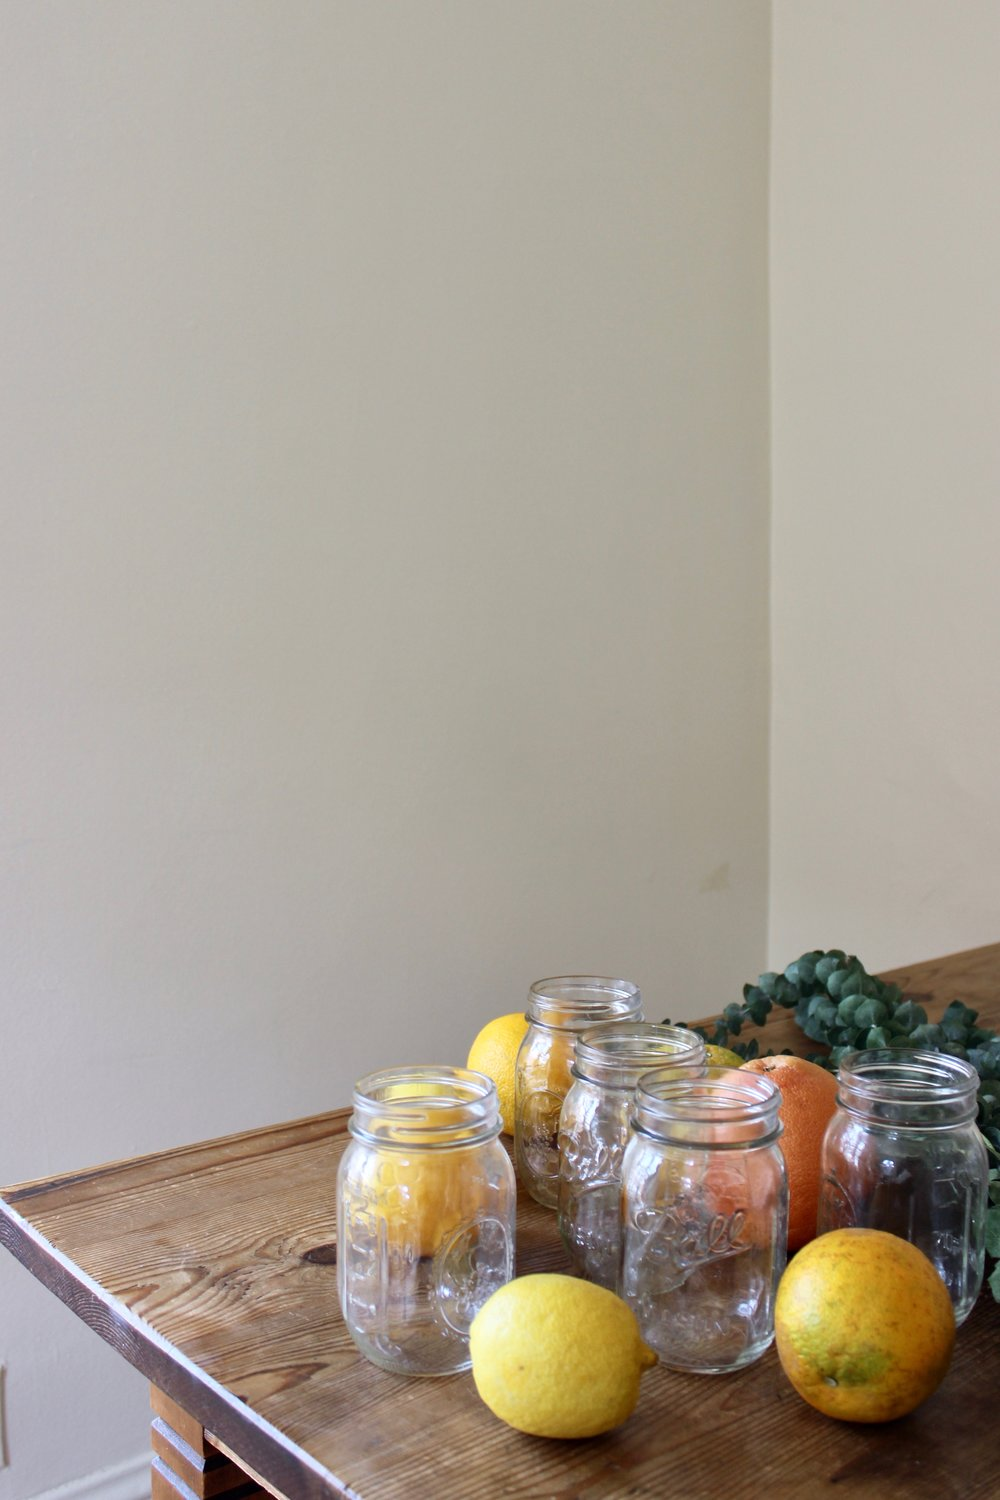 DIY zero waste cleaning vinegar scented with lemon, grapefruit, orange, eucalyptus, or pine | Litterless